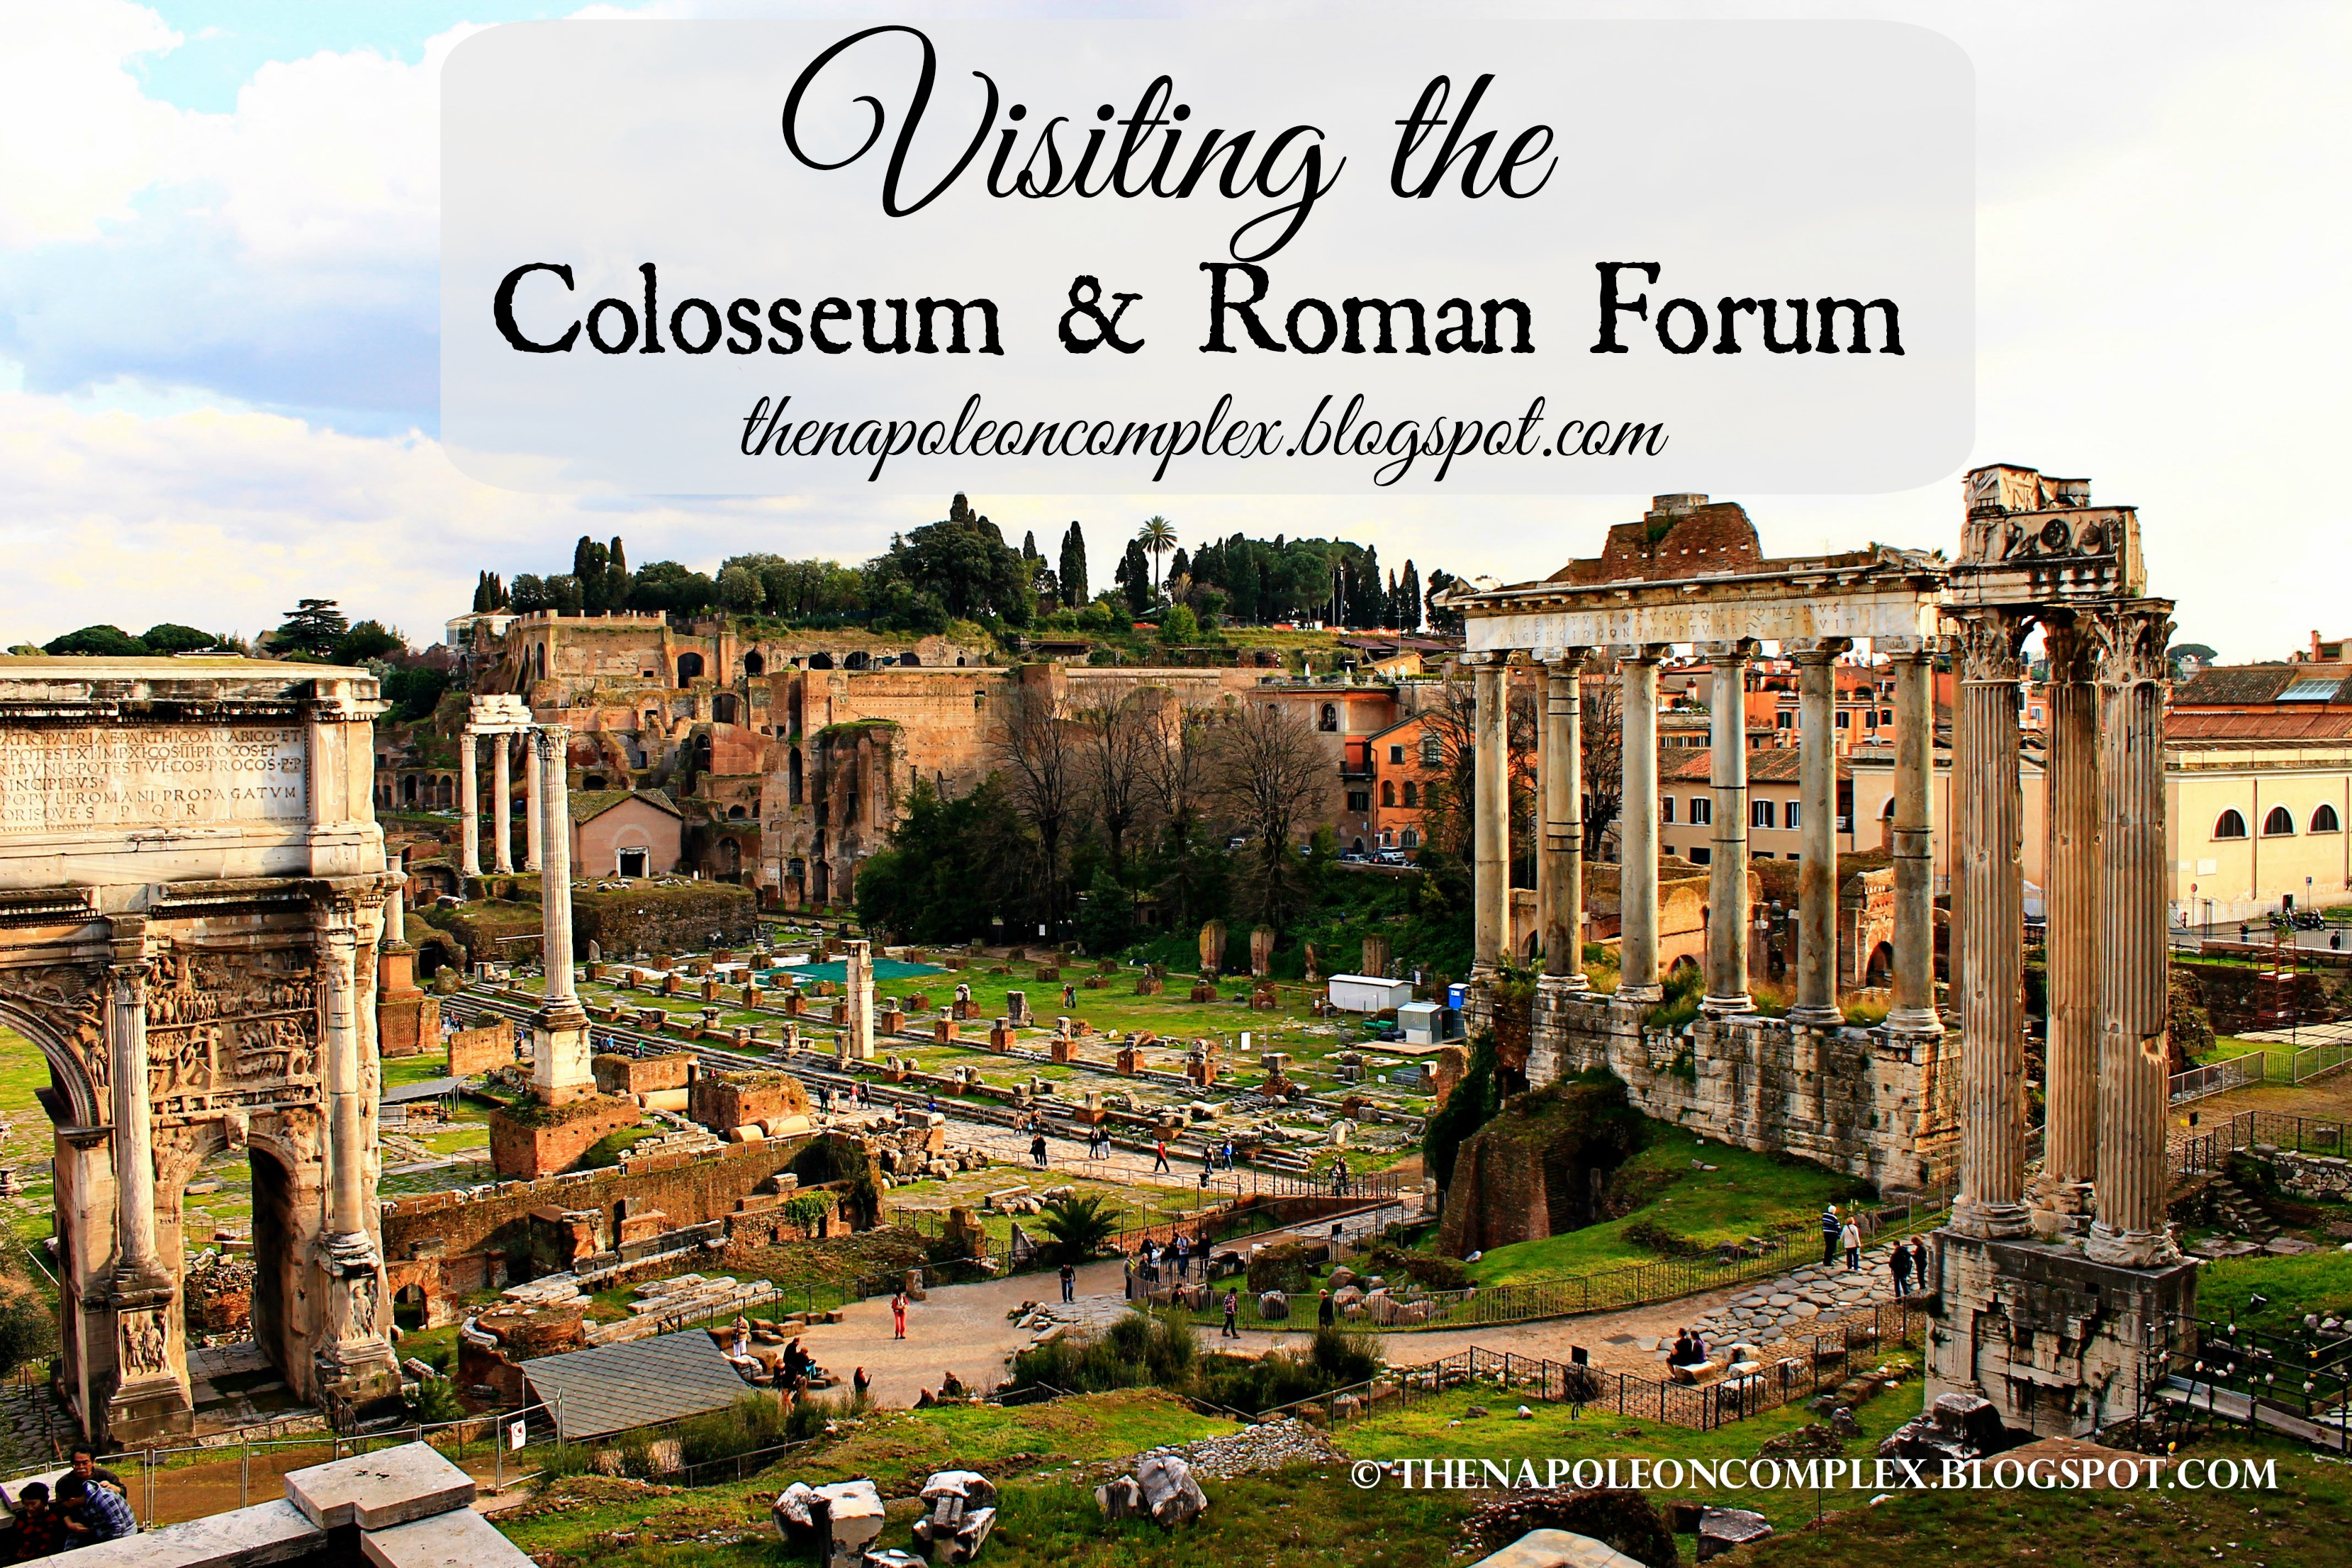 Visiting the Colosseum and the Roman Forum